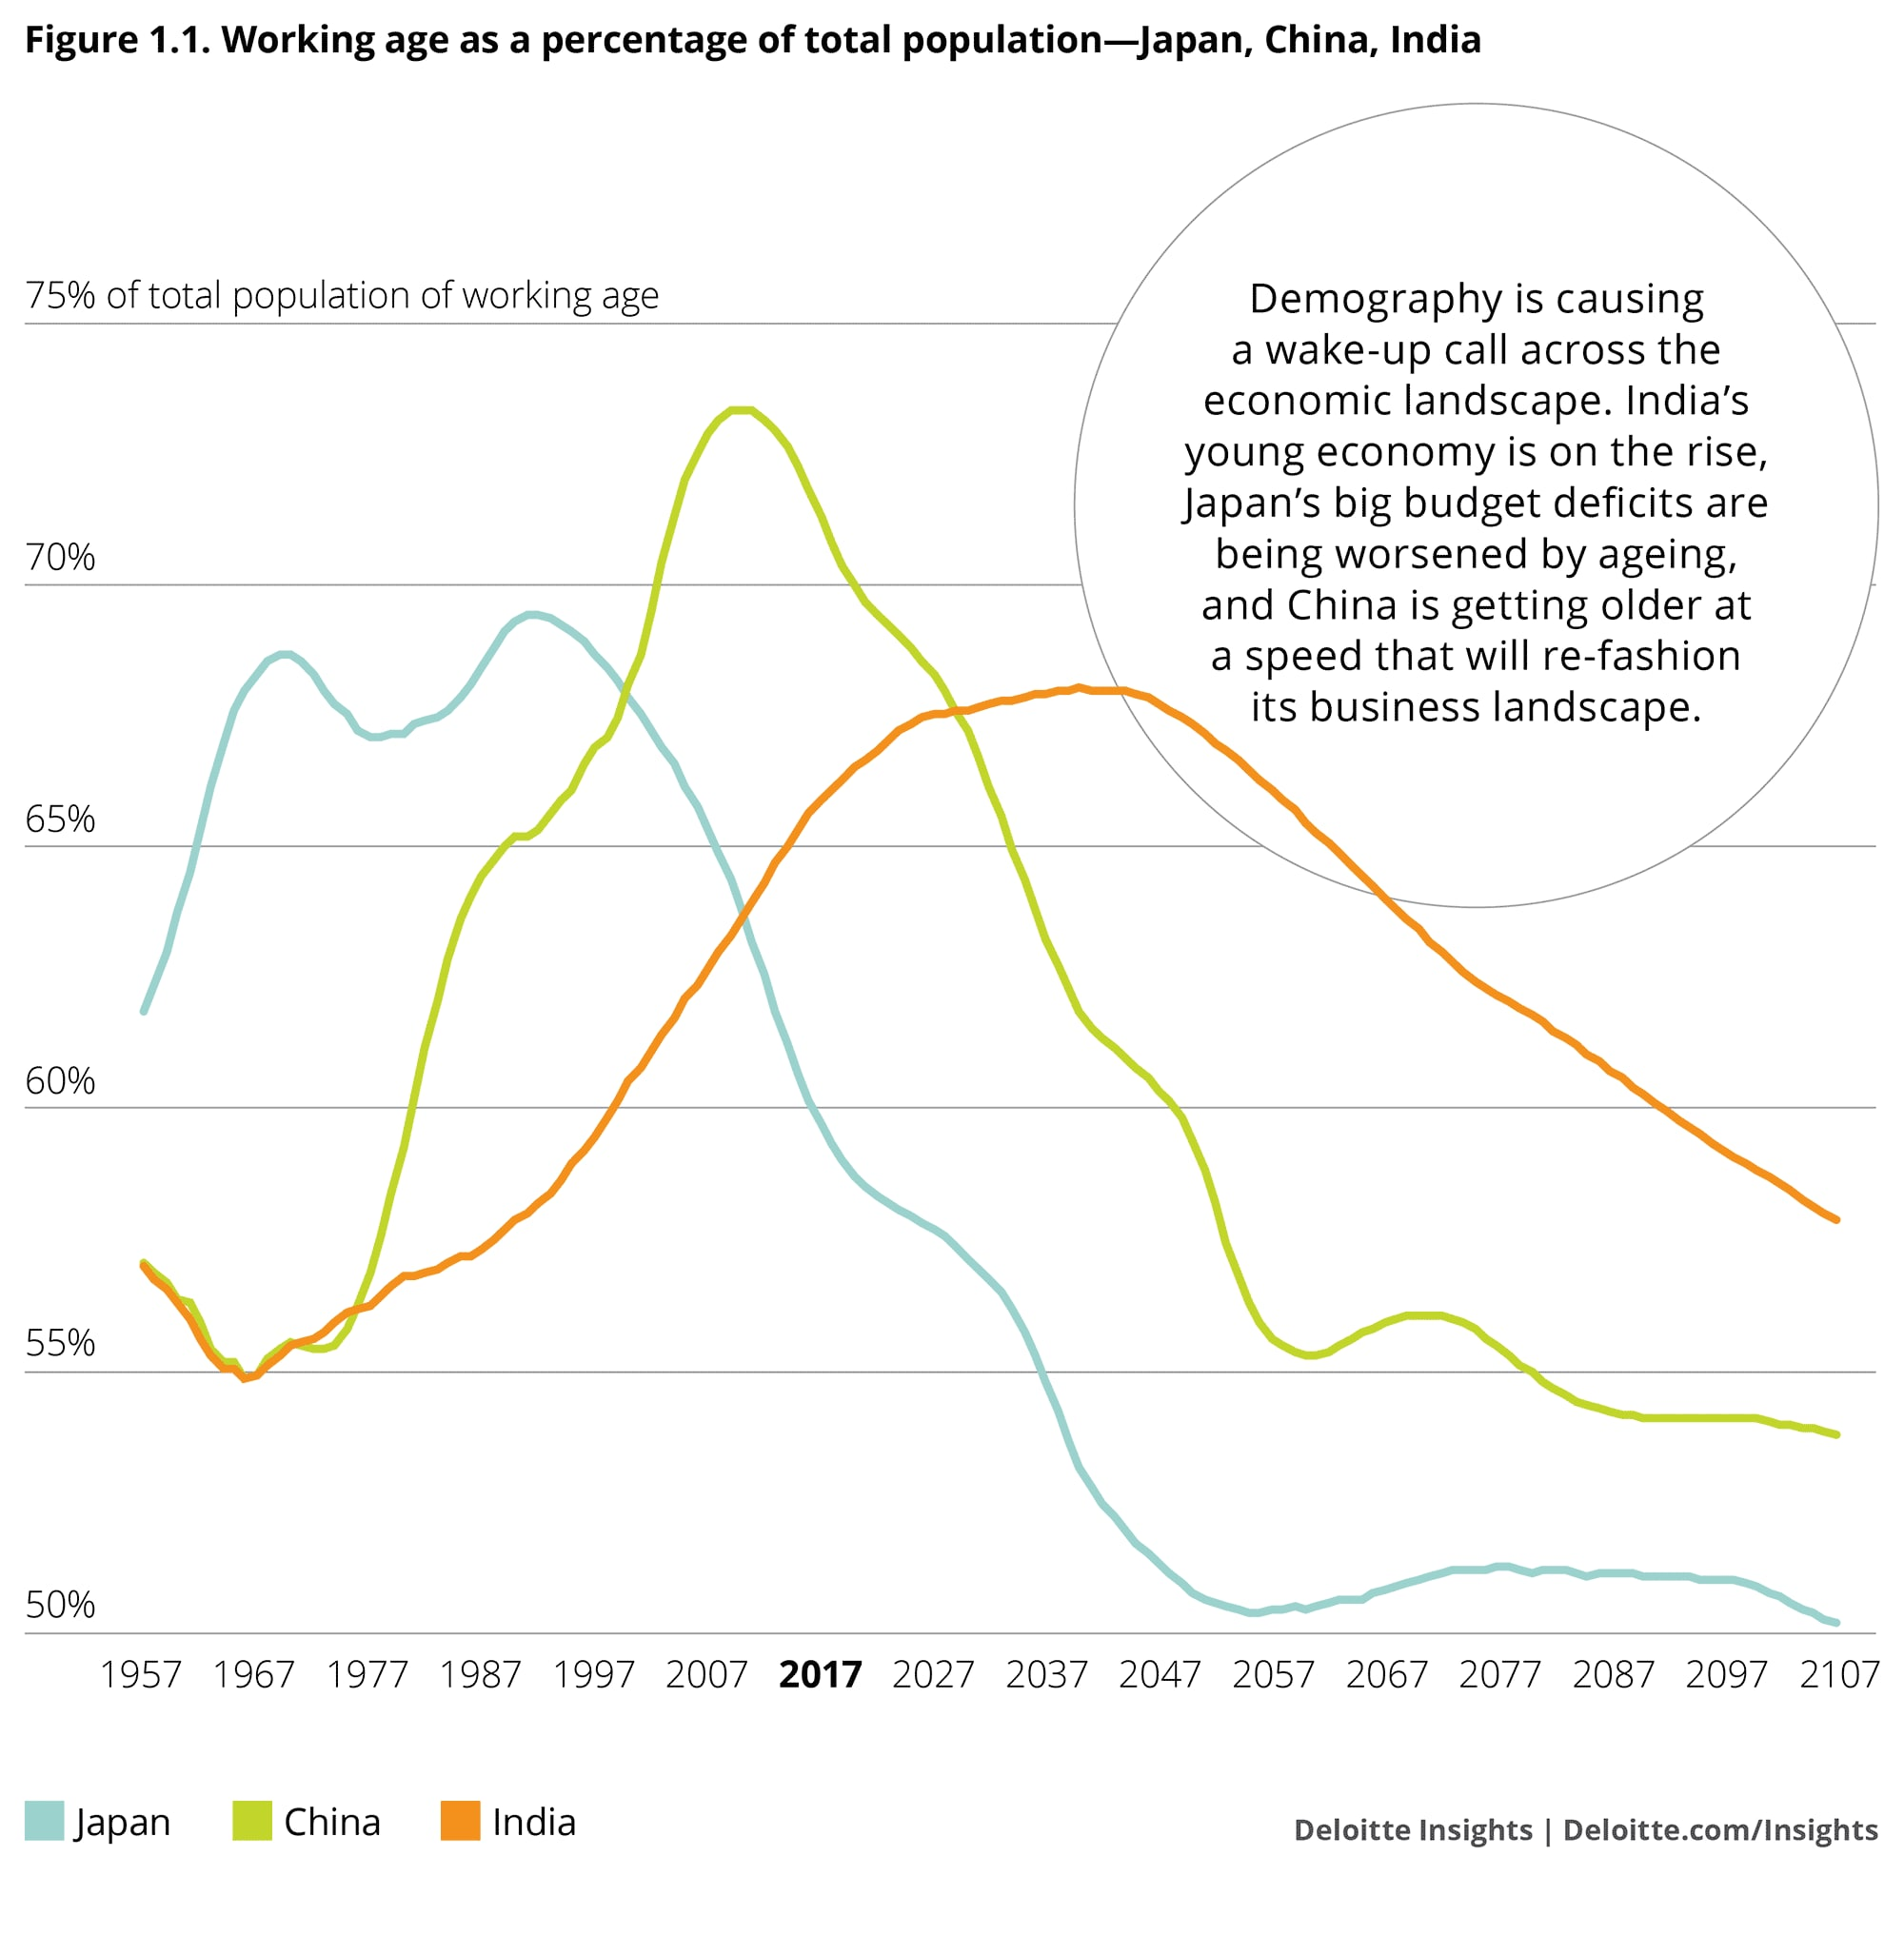 Working age as a percentage of total population: Japan, China, India